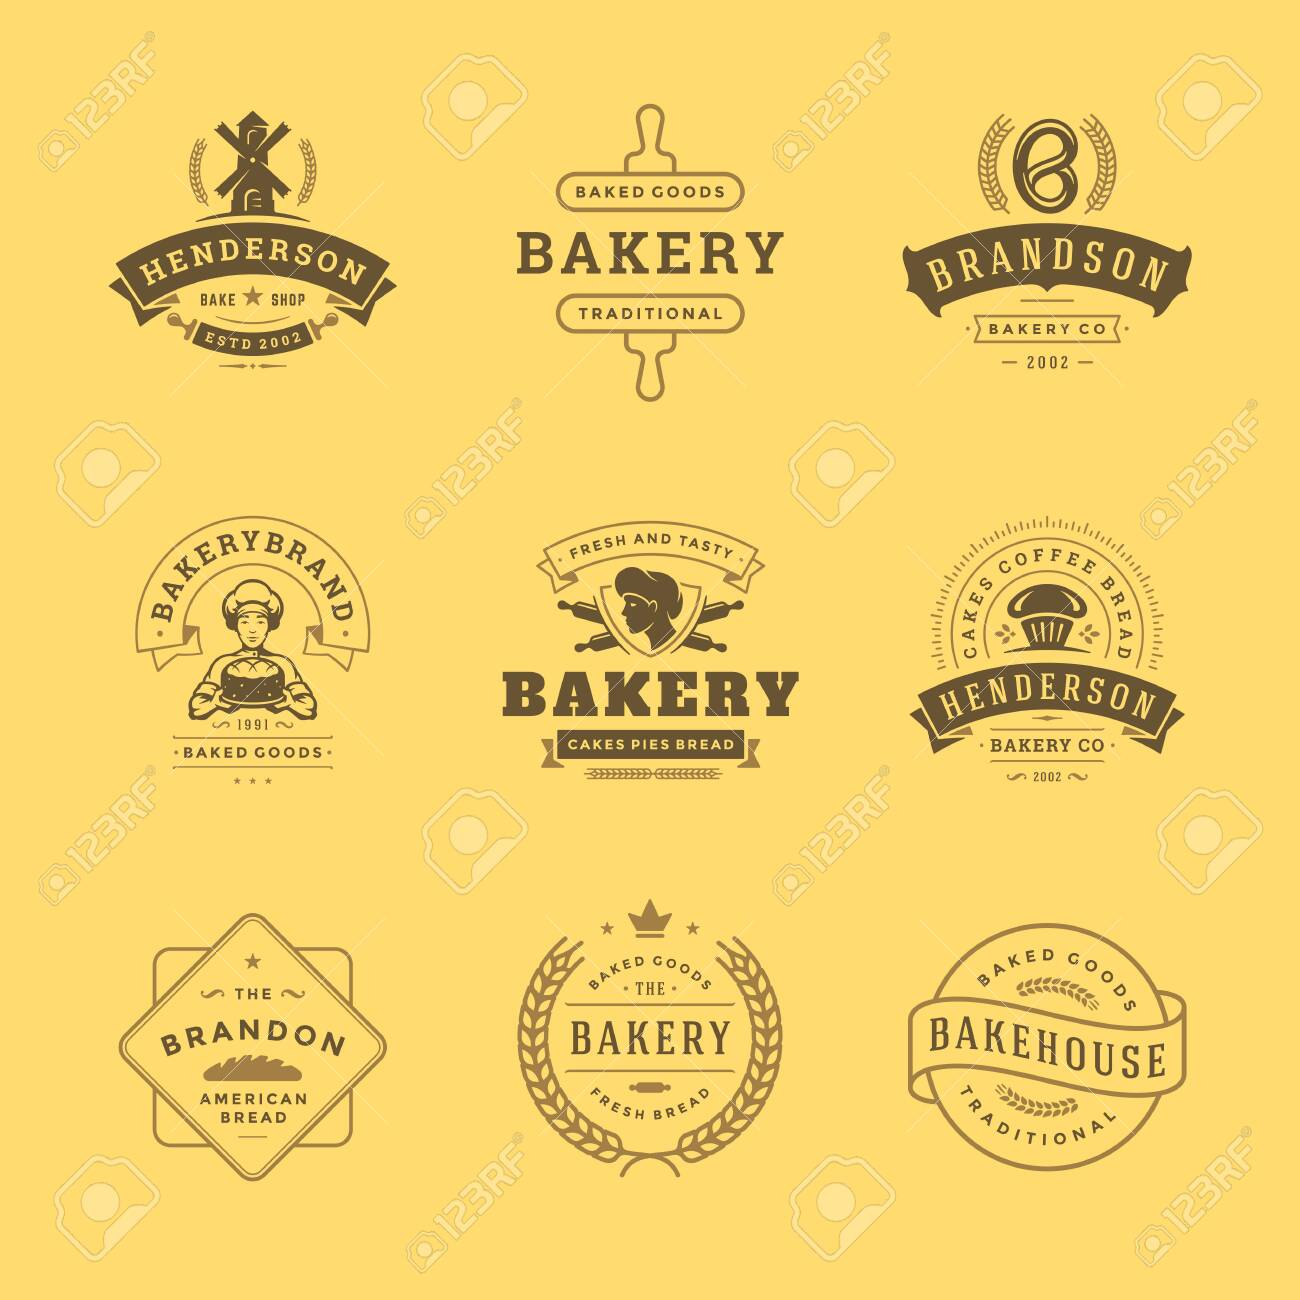 Bakery icon and badges design templates set illustration good for bakery shop and cafe emblems. - 130303872